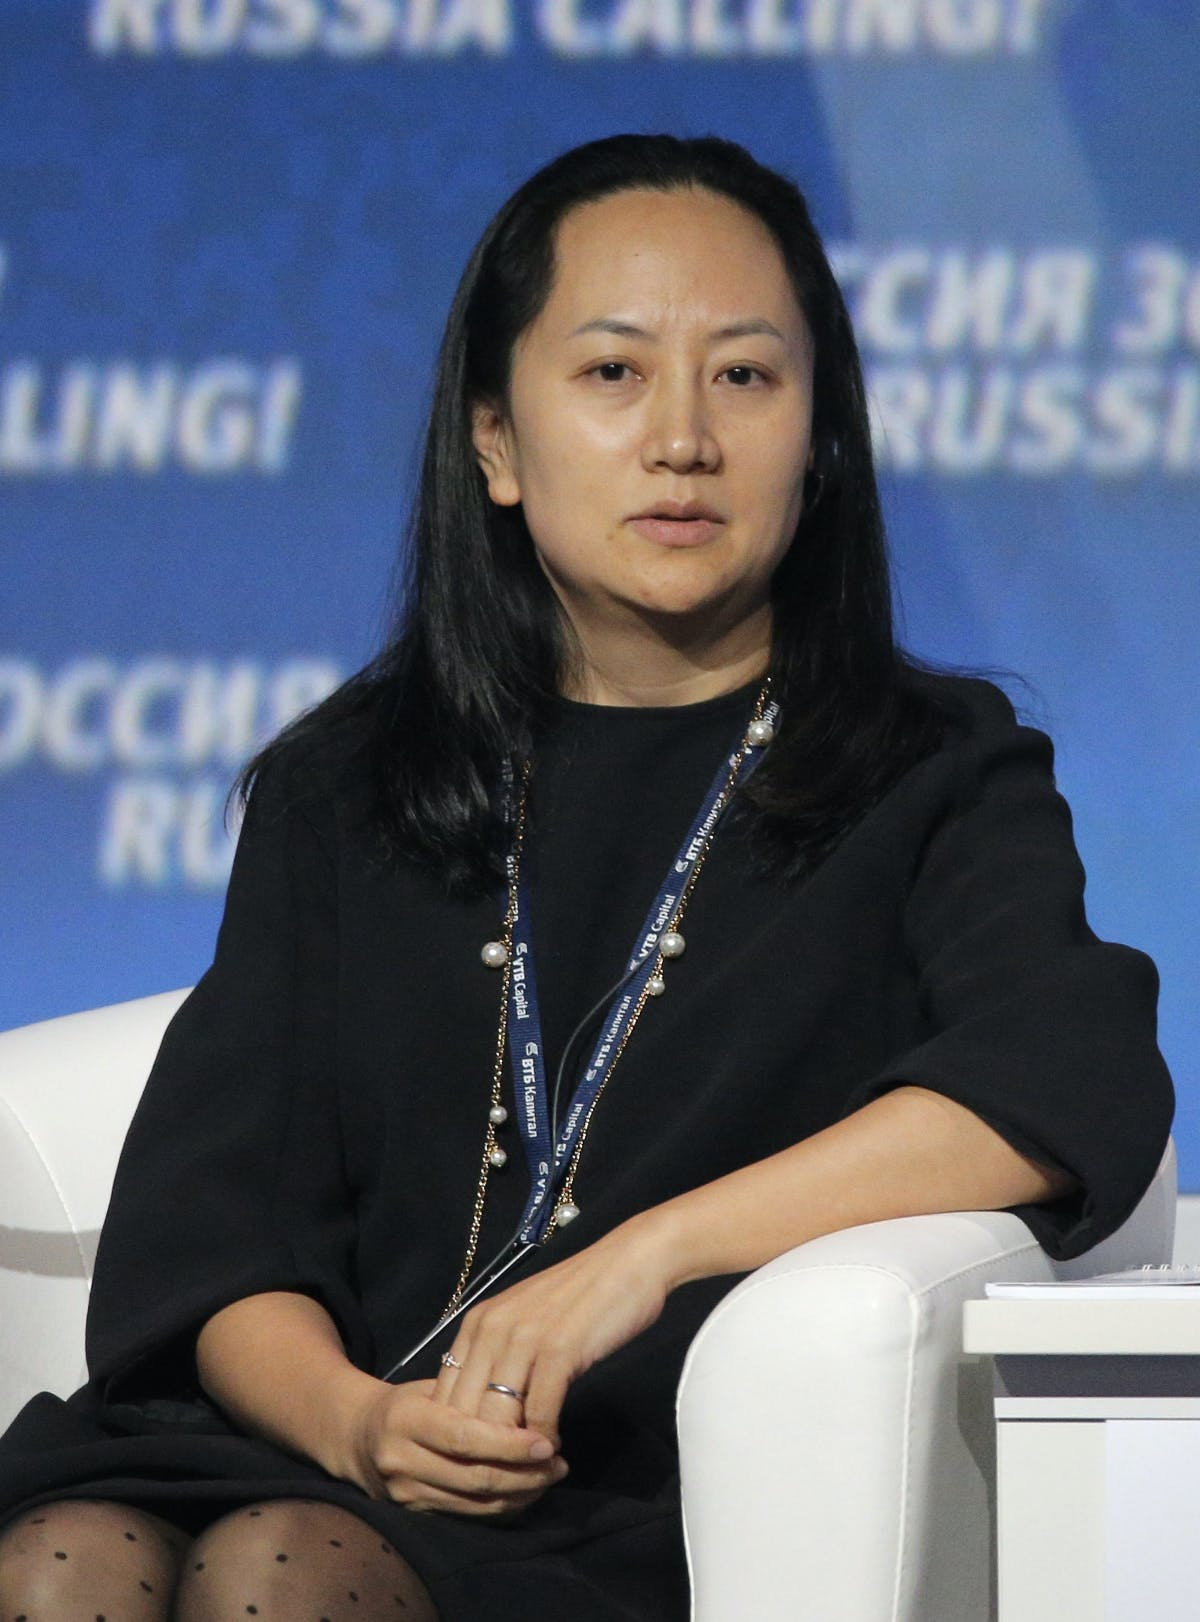 epa04427863 Meng Wanzhou, Executive Board Director, Huawei, attends the VTB Capital's 'RUSSIA CALLING' Investment forum in Moscow, Russia, 02 October 2014. The forum according to VTB Capital is designed to promote portfolio and strategic investment into Russia's economy and facilitate effective interaction between Russian business leaders and international investors. EPA/MAXIM SHIPENKOV |